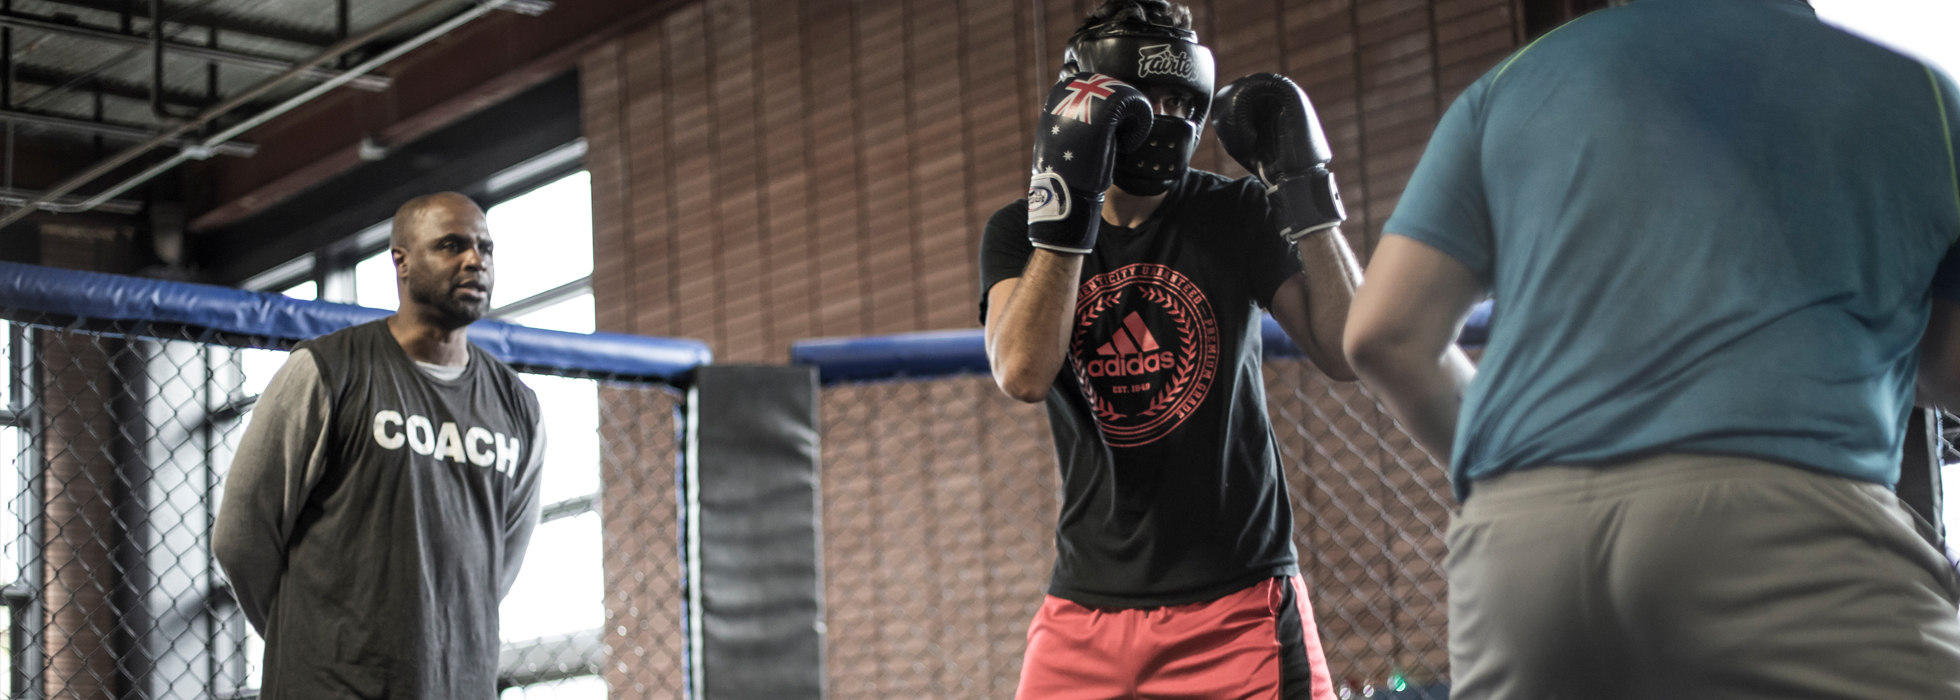 Muay Thai Training near Atlanta GA, Muay Thai Training near Cartersville GA, Muay Thai Training near Chamblee GA, Muay Thai Training near Midtown Atlanta GA, Muay Thai Training near Sandy Springs GA, Muay Thai Training near Dacula GA